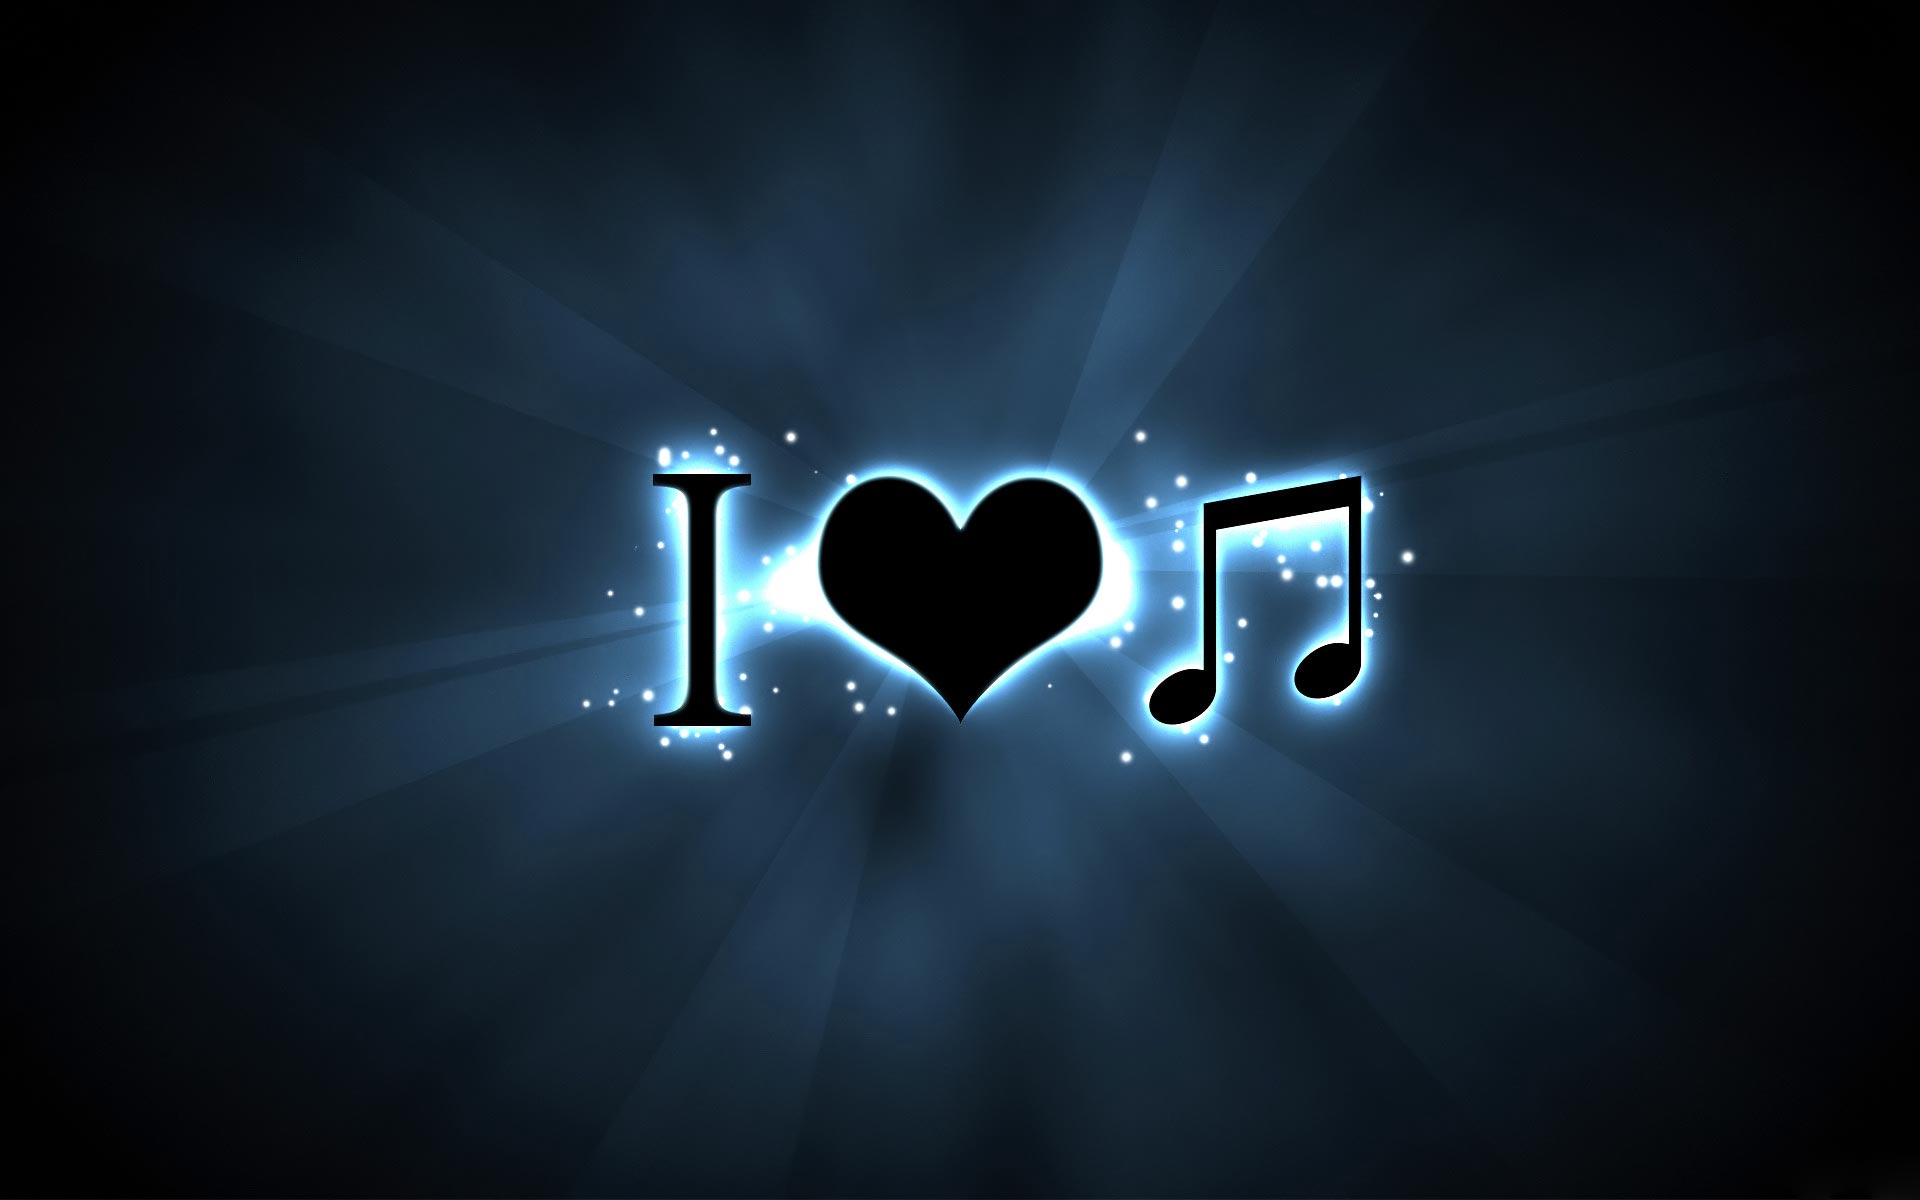 Best artistic music hd wallpapersrs for desktop all hd All hd song